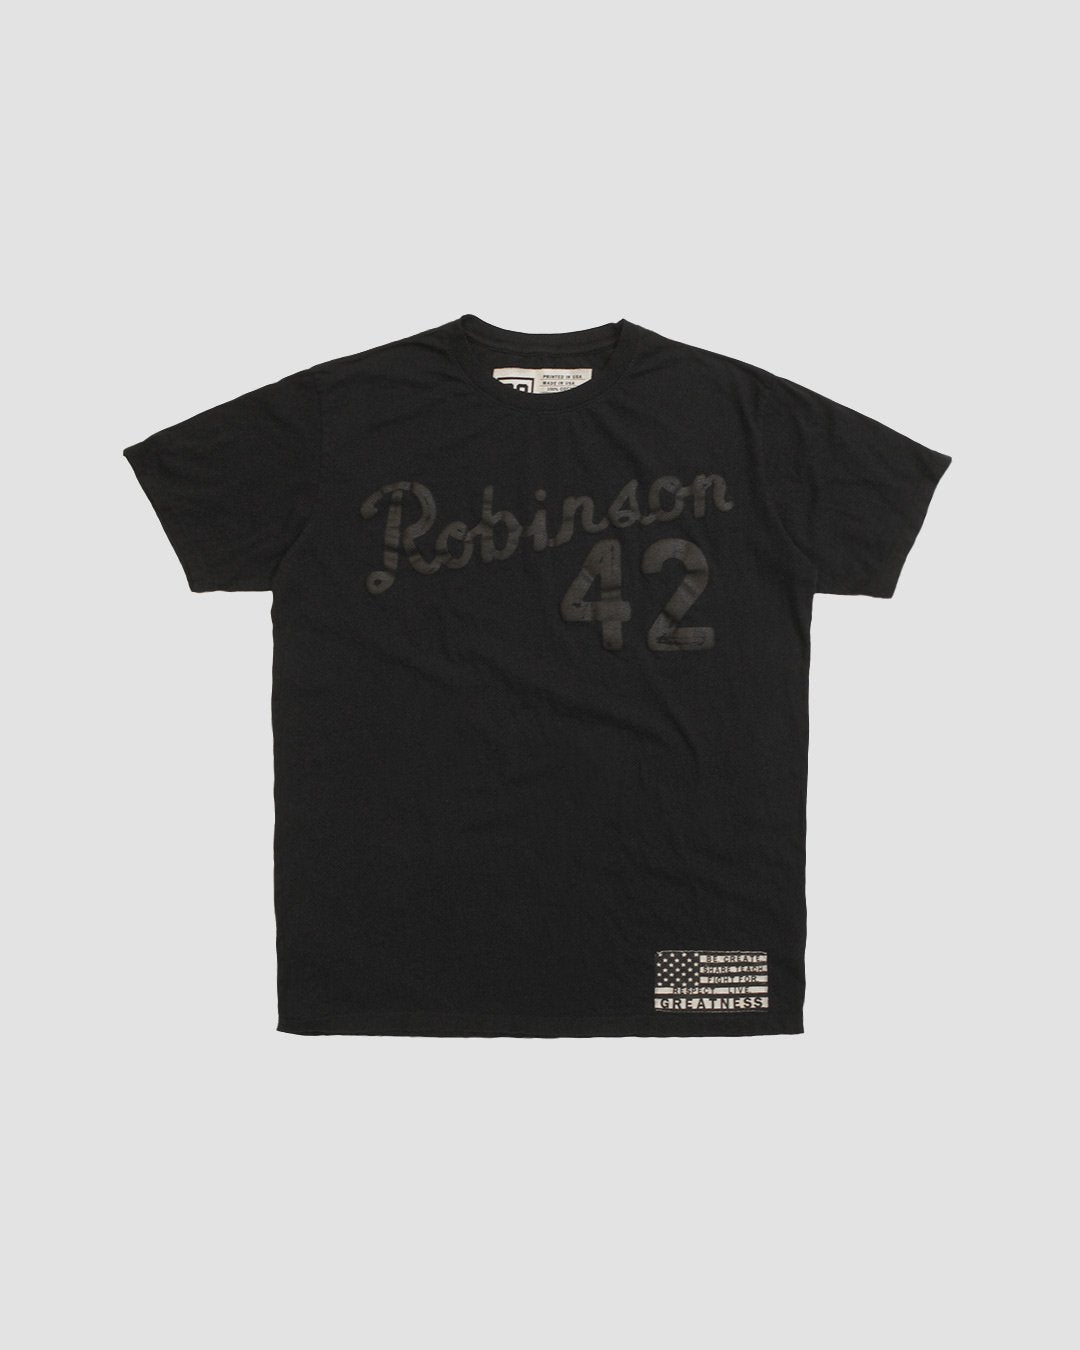 BHT - Jackie Robinson #42 Tee - Roots of Inc dba Roots of Fight